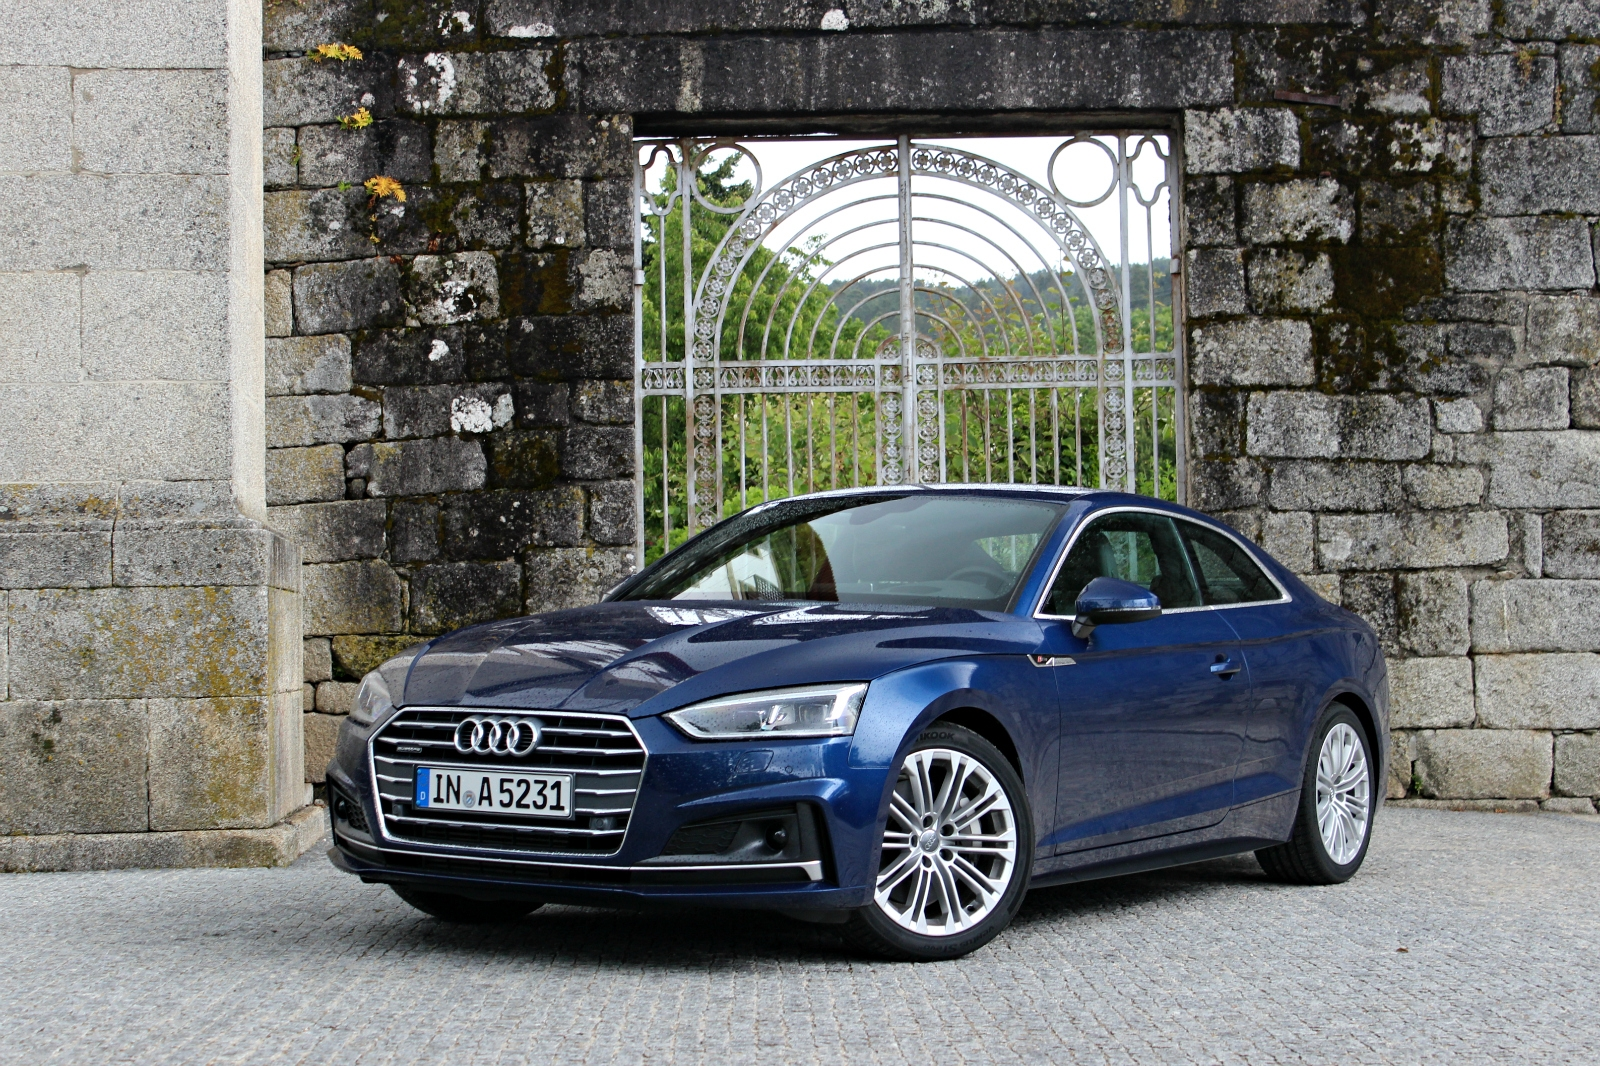 images design a of sketch hd cars wallpaper coup coupe audi